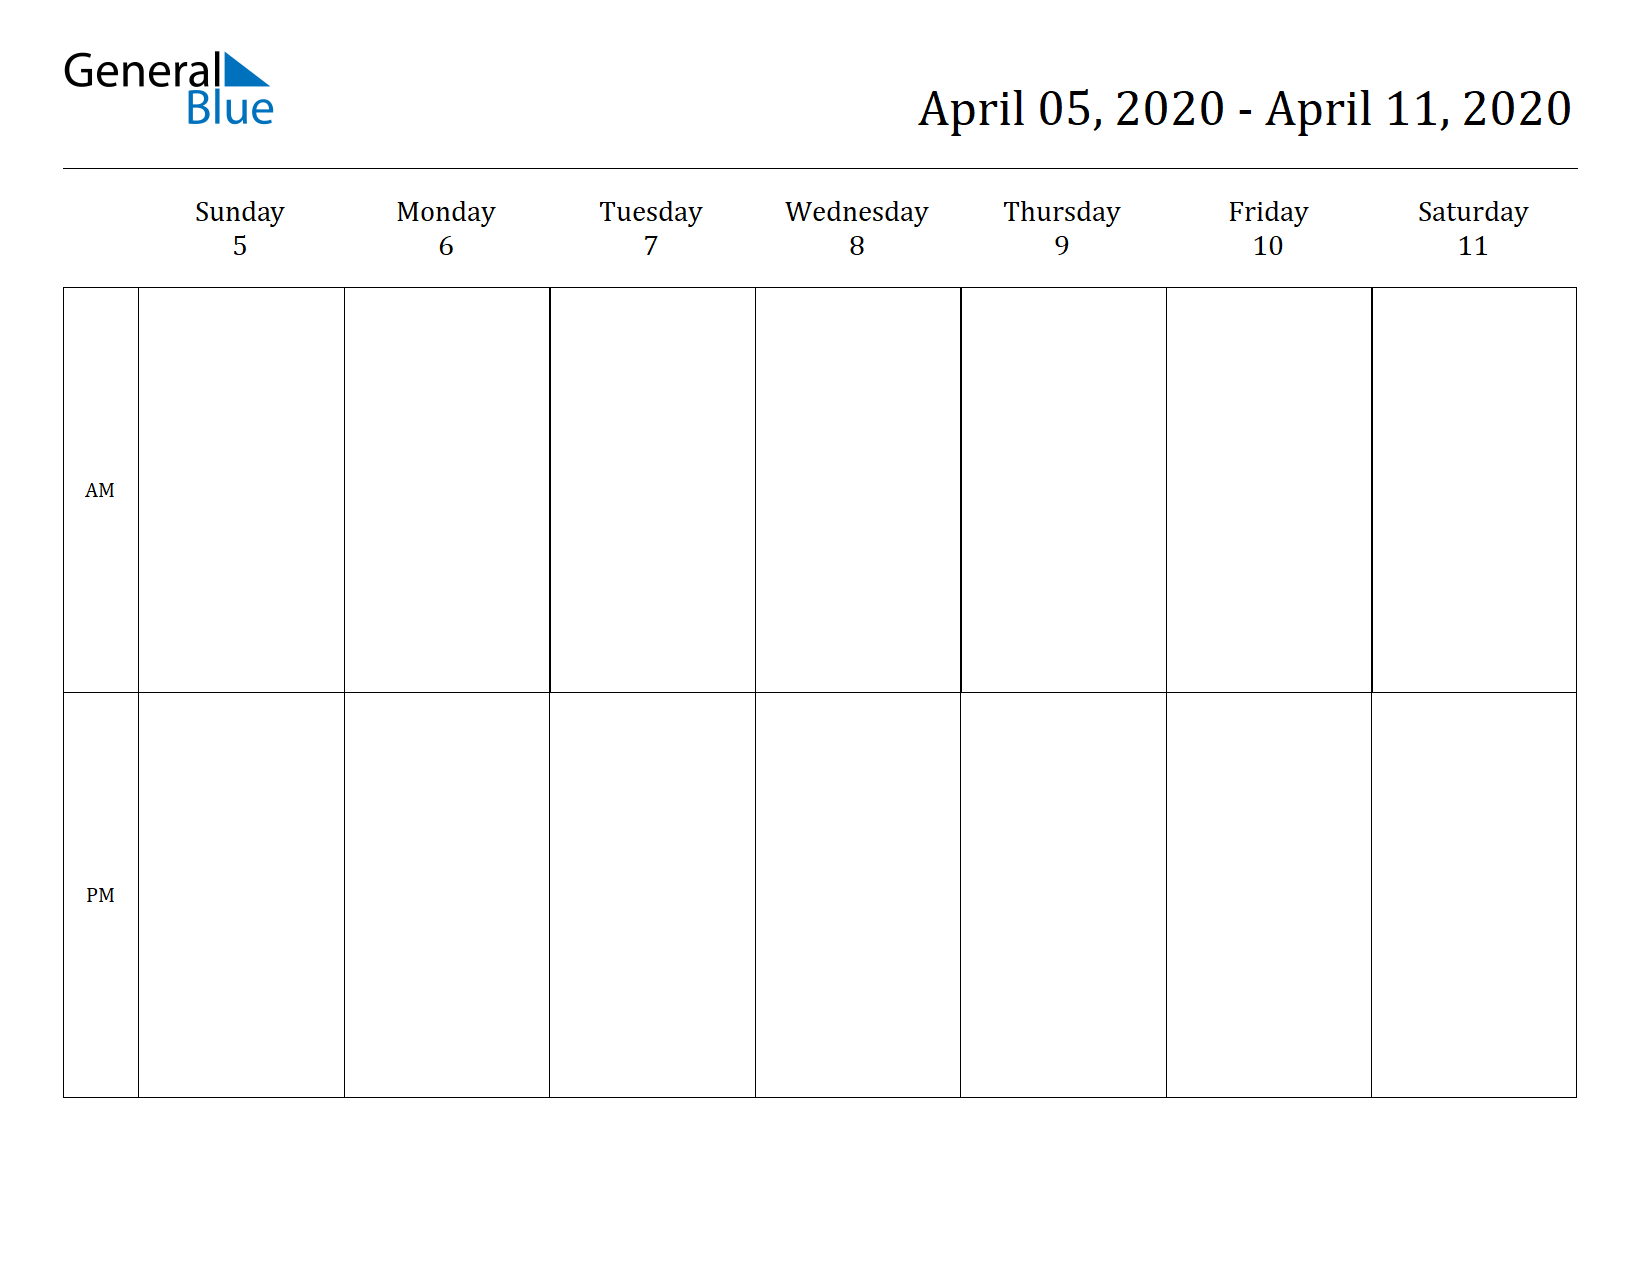 Weekly Calendar for Apr 05, 2020 to Apr 11, 2020